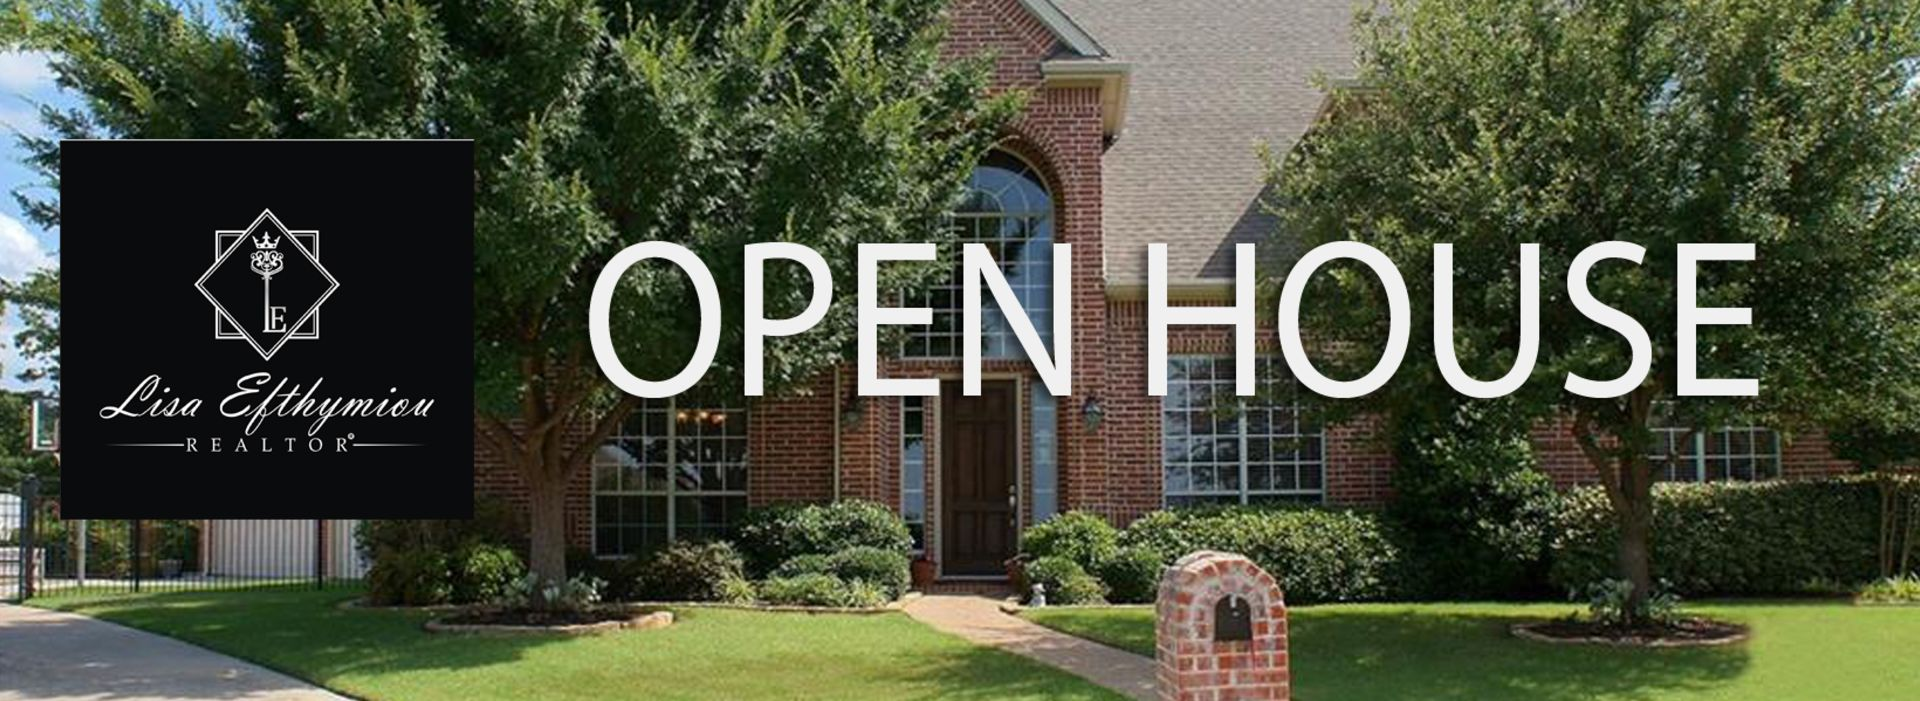 OPEN HOUSE THIS SATURDAY: 2114 Karnes Drive. Keller, 76248